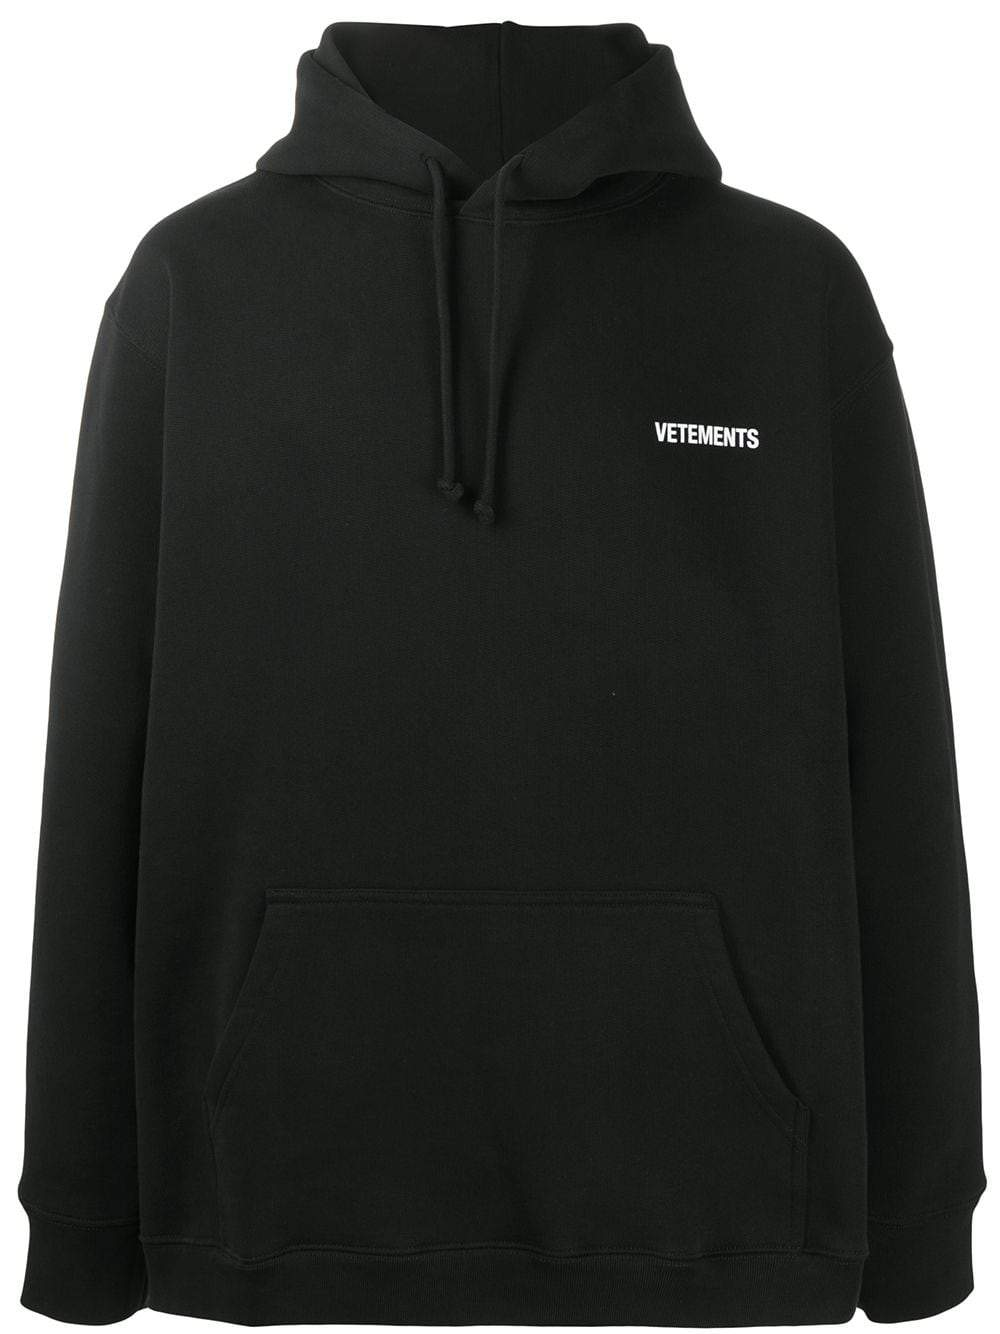 VETEMENTS front back logo hoodie black